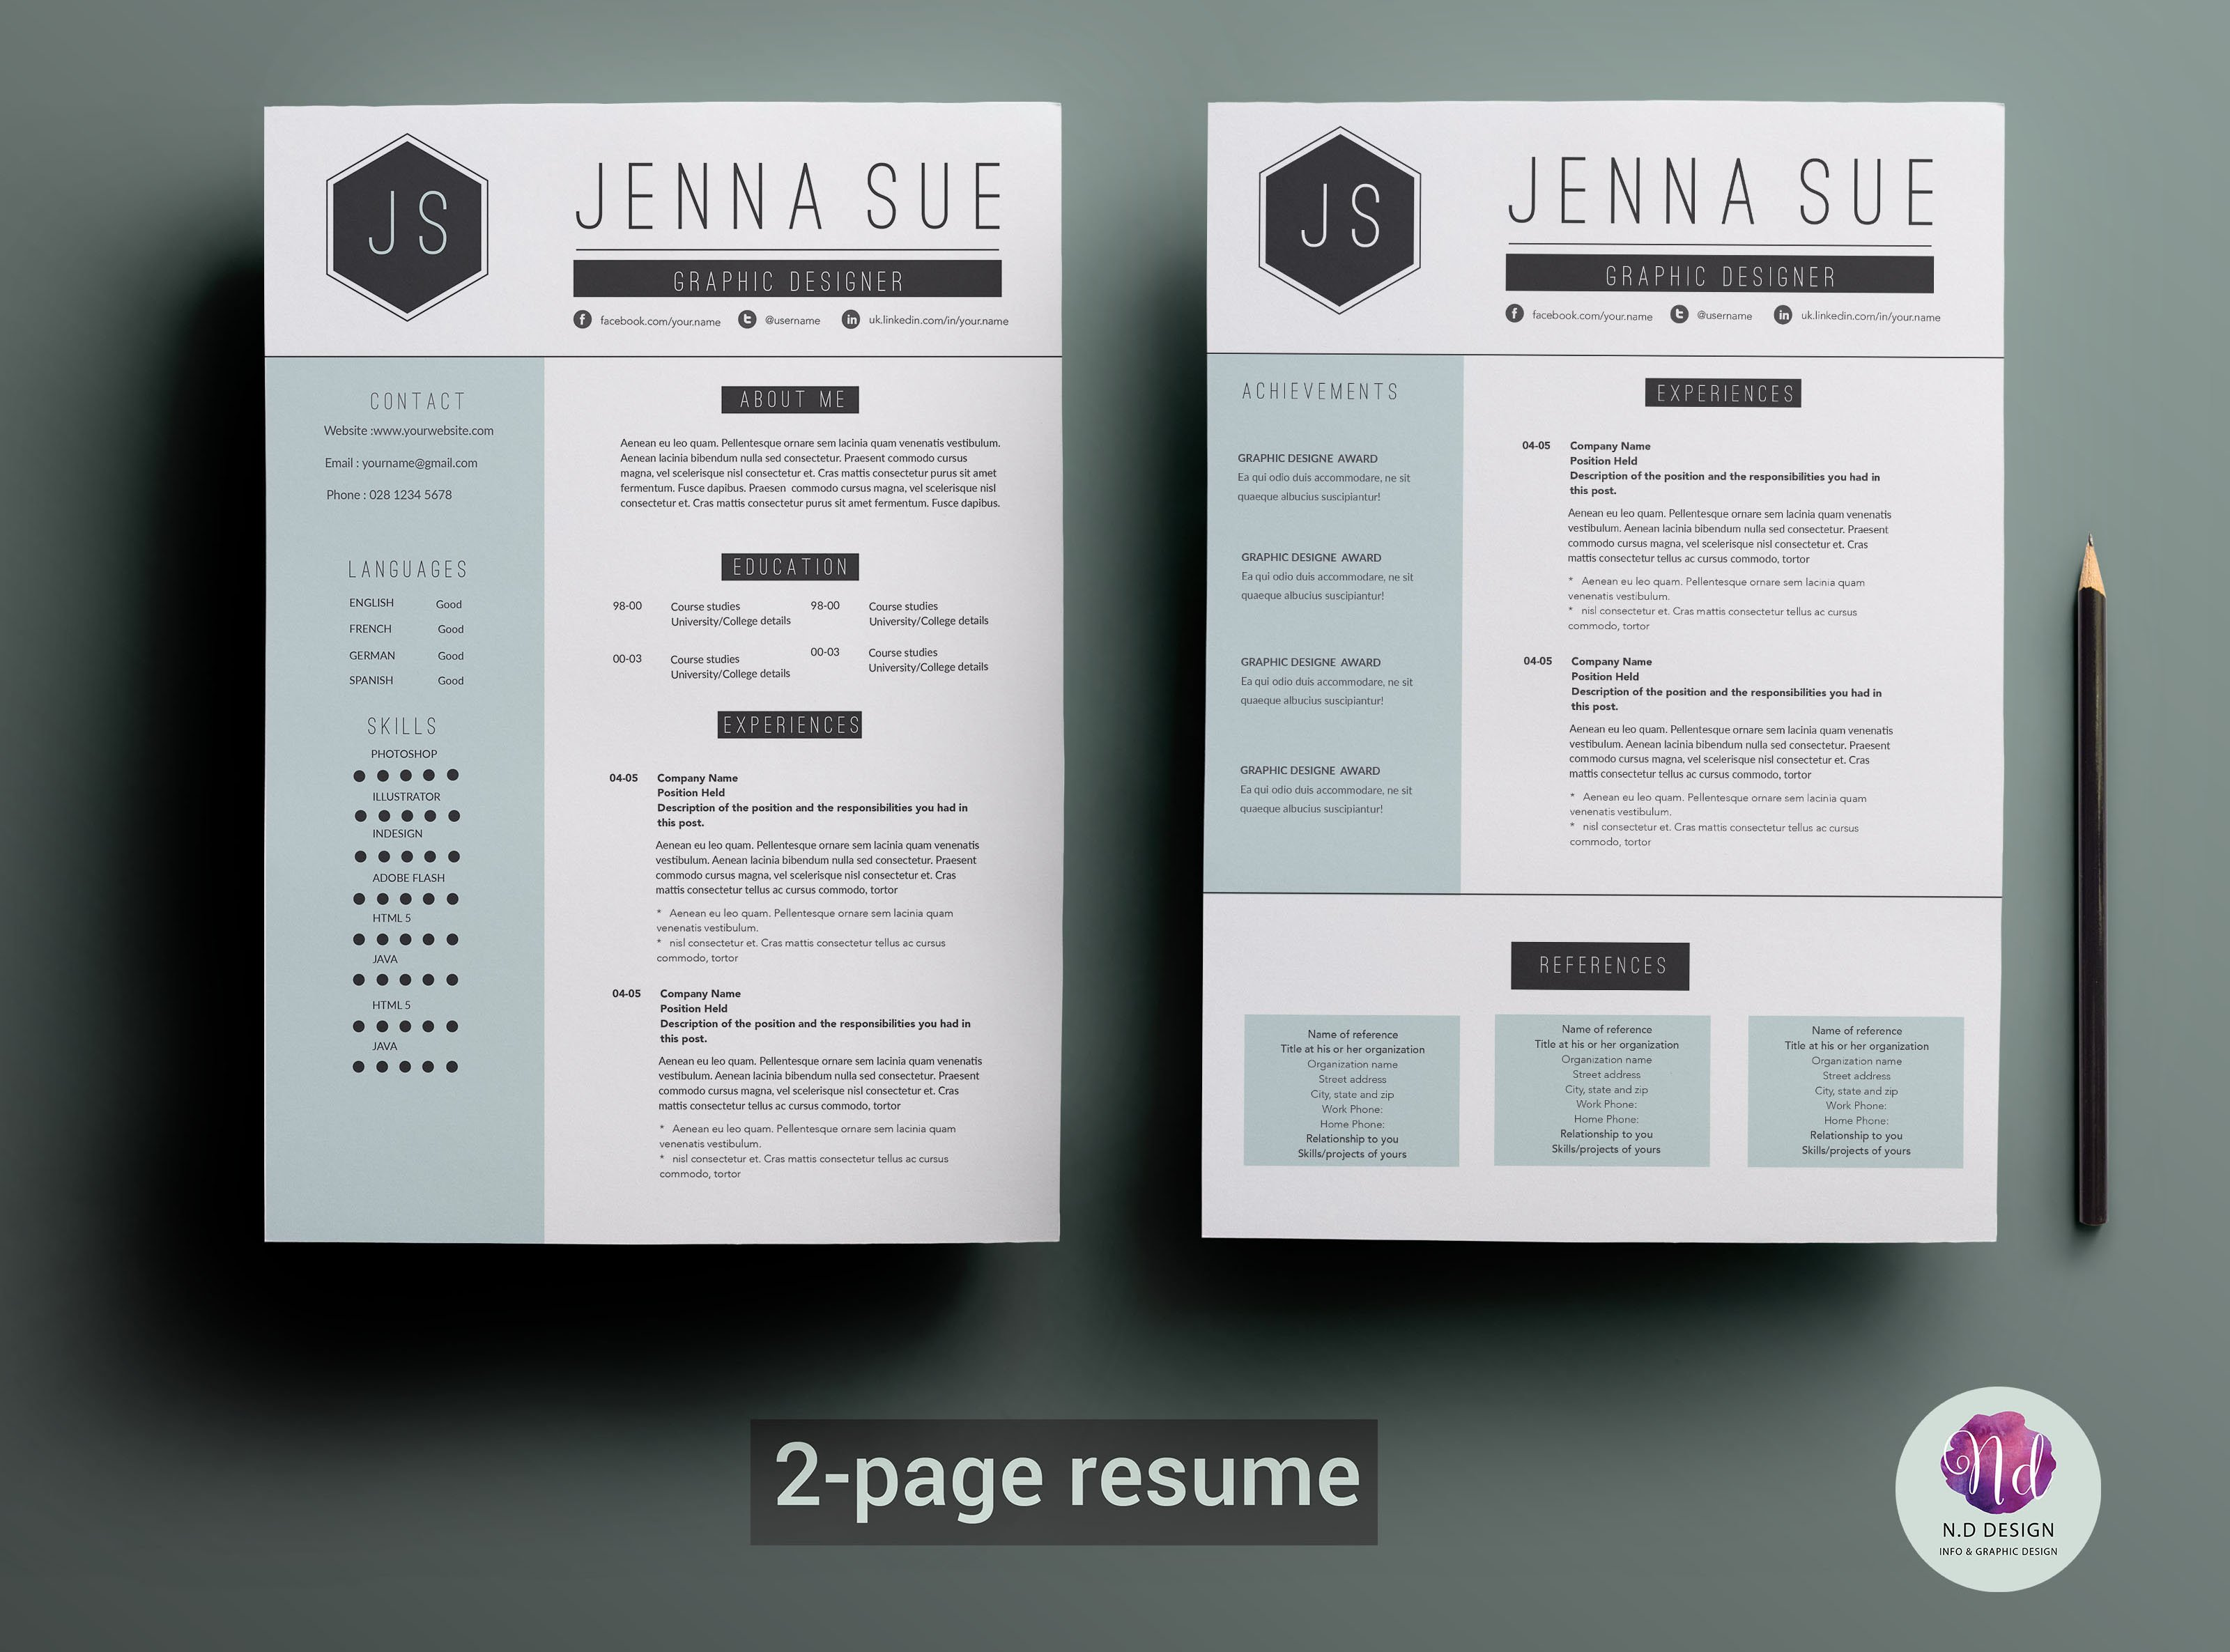 Resume Is It Ok To Have A 3 Page Resume clean resume template pkg templates on creative market 2 page template